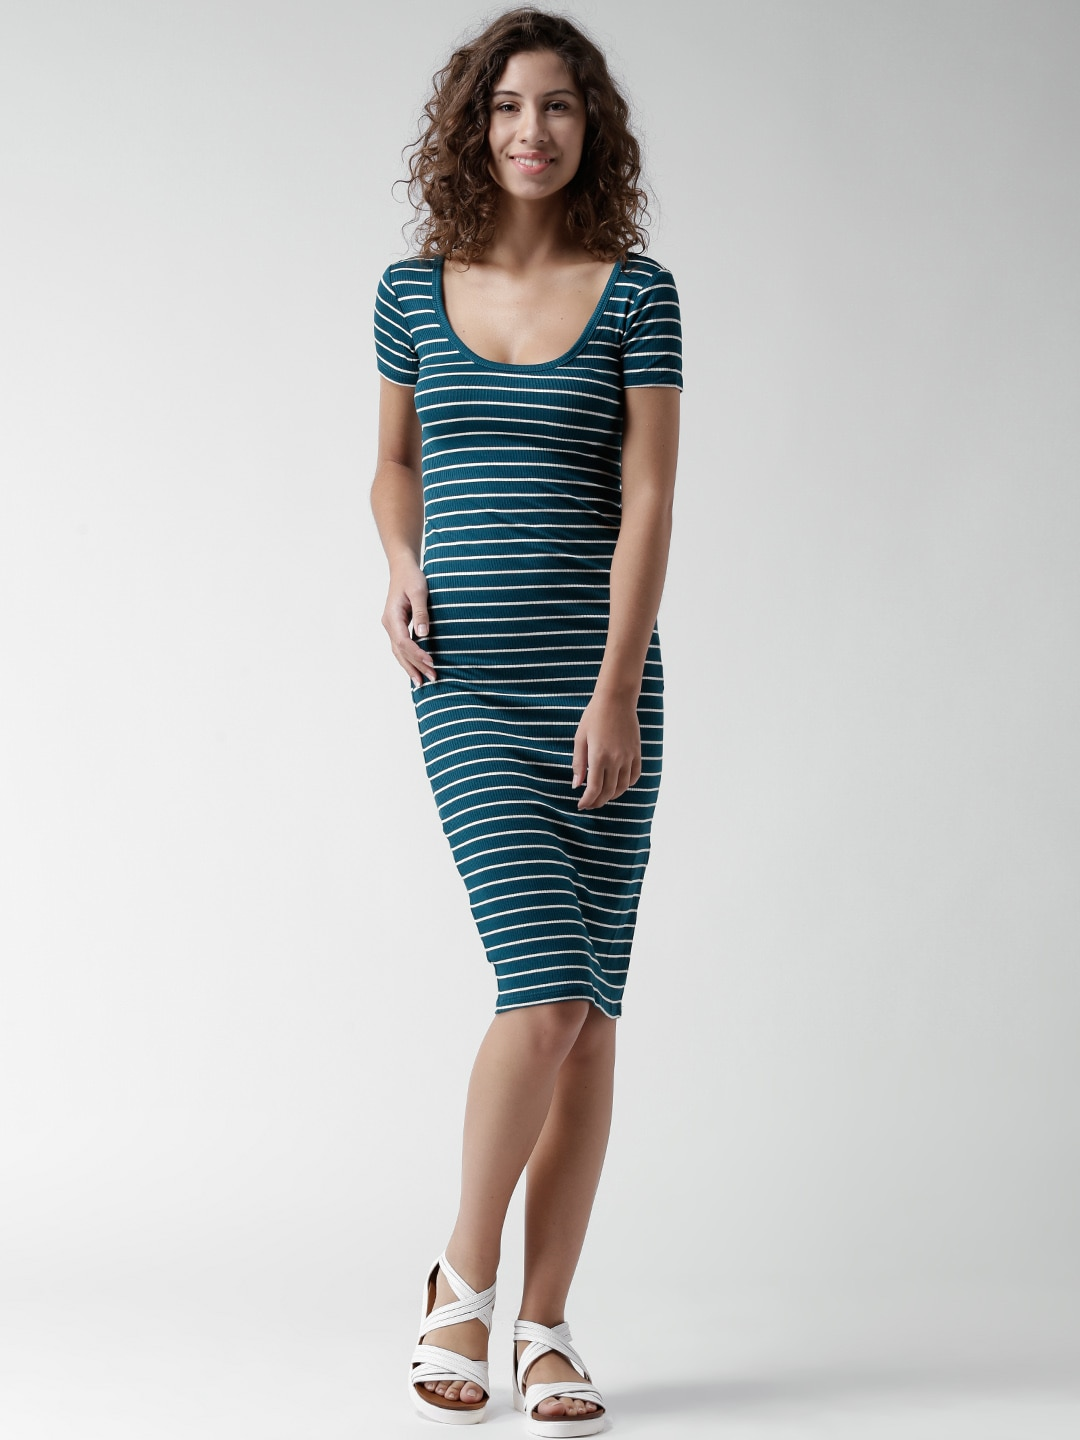 Buy FOREVER 21 Teal Green Striped Bodycon Dress - Apparel ...